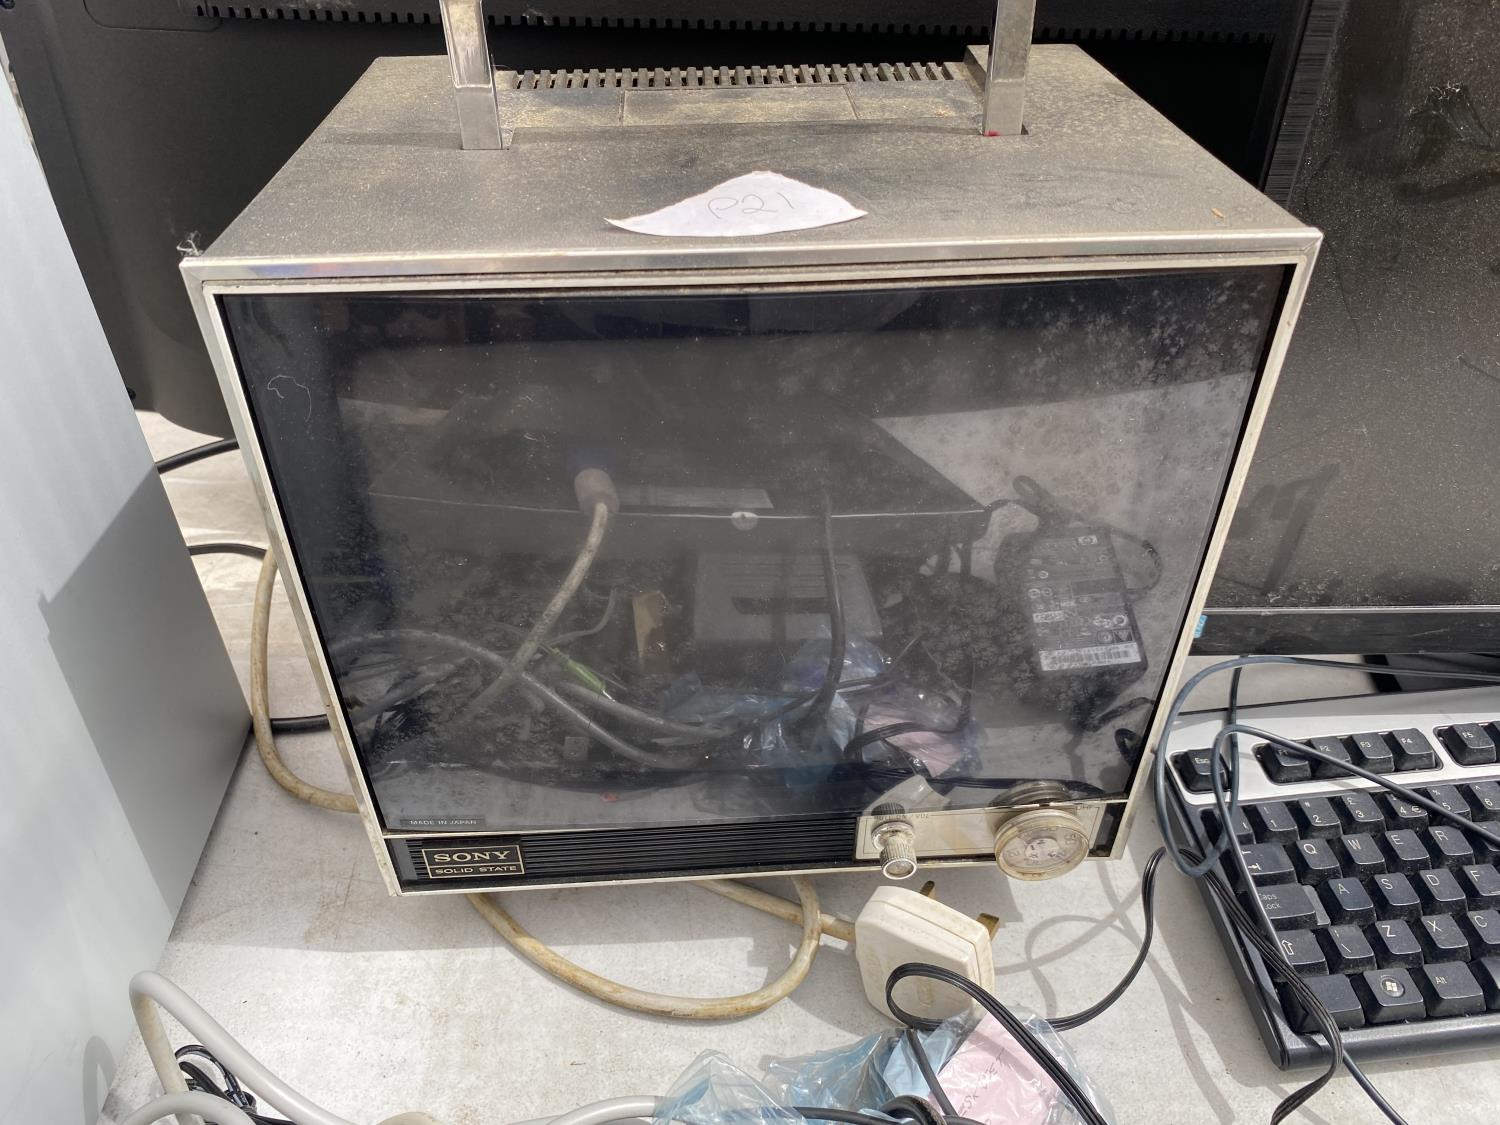 AN ASSORTMENT OF COMPUTER ITEMS TO INCLUDE MONITOR, TOWER AND KEYBOARD ETC - Image 2 of 4